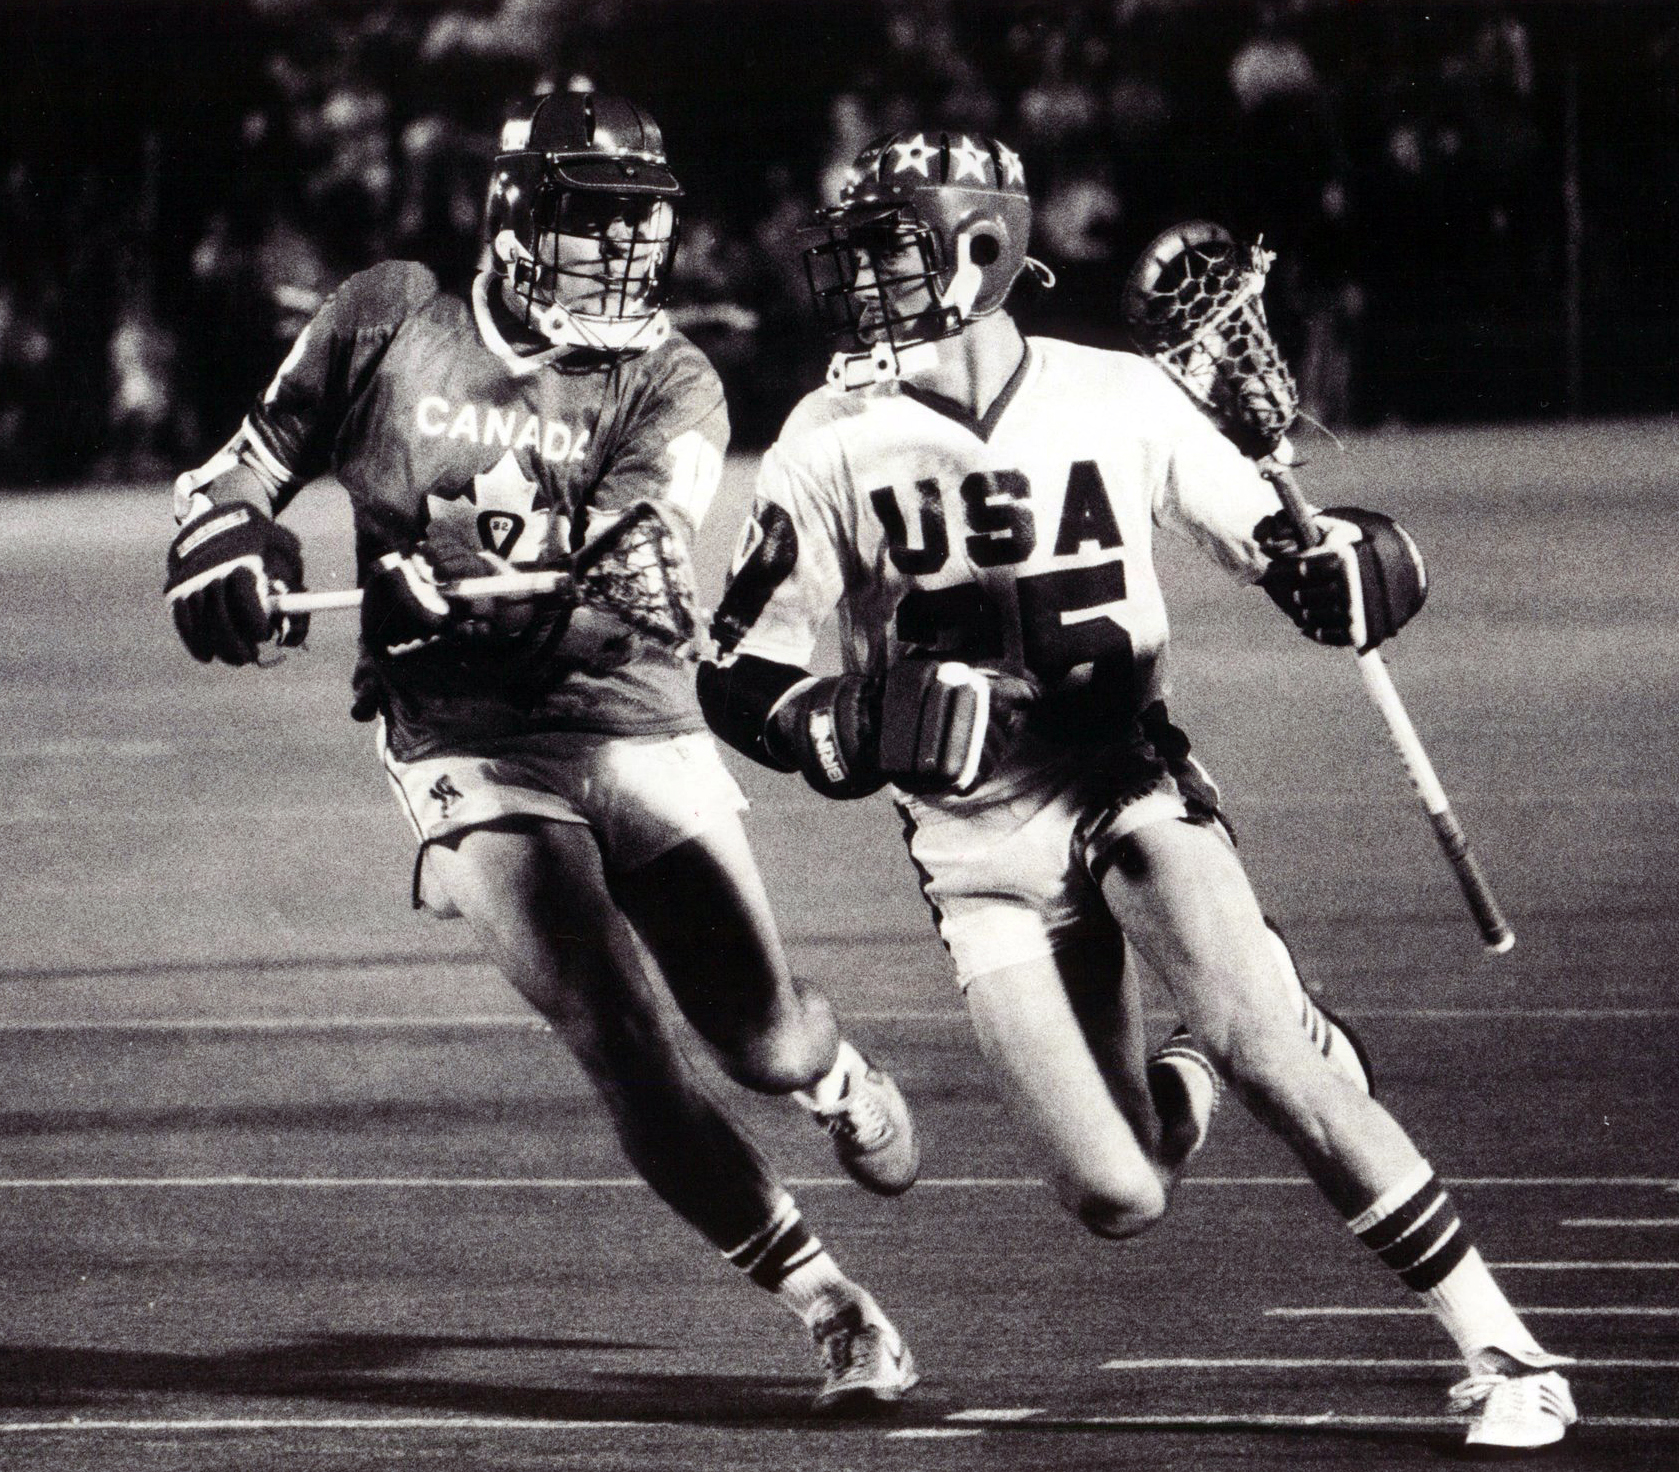 Brendan Schneck going to the hoop against team Canada in 1982, Courtesy of US Lacrosse